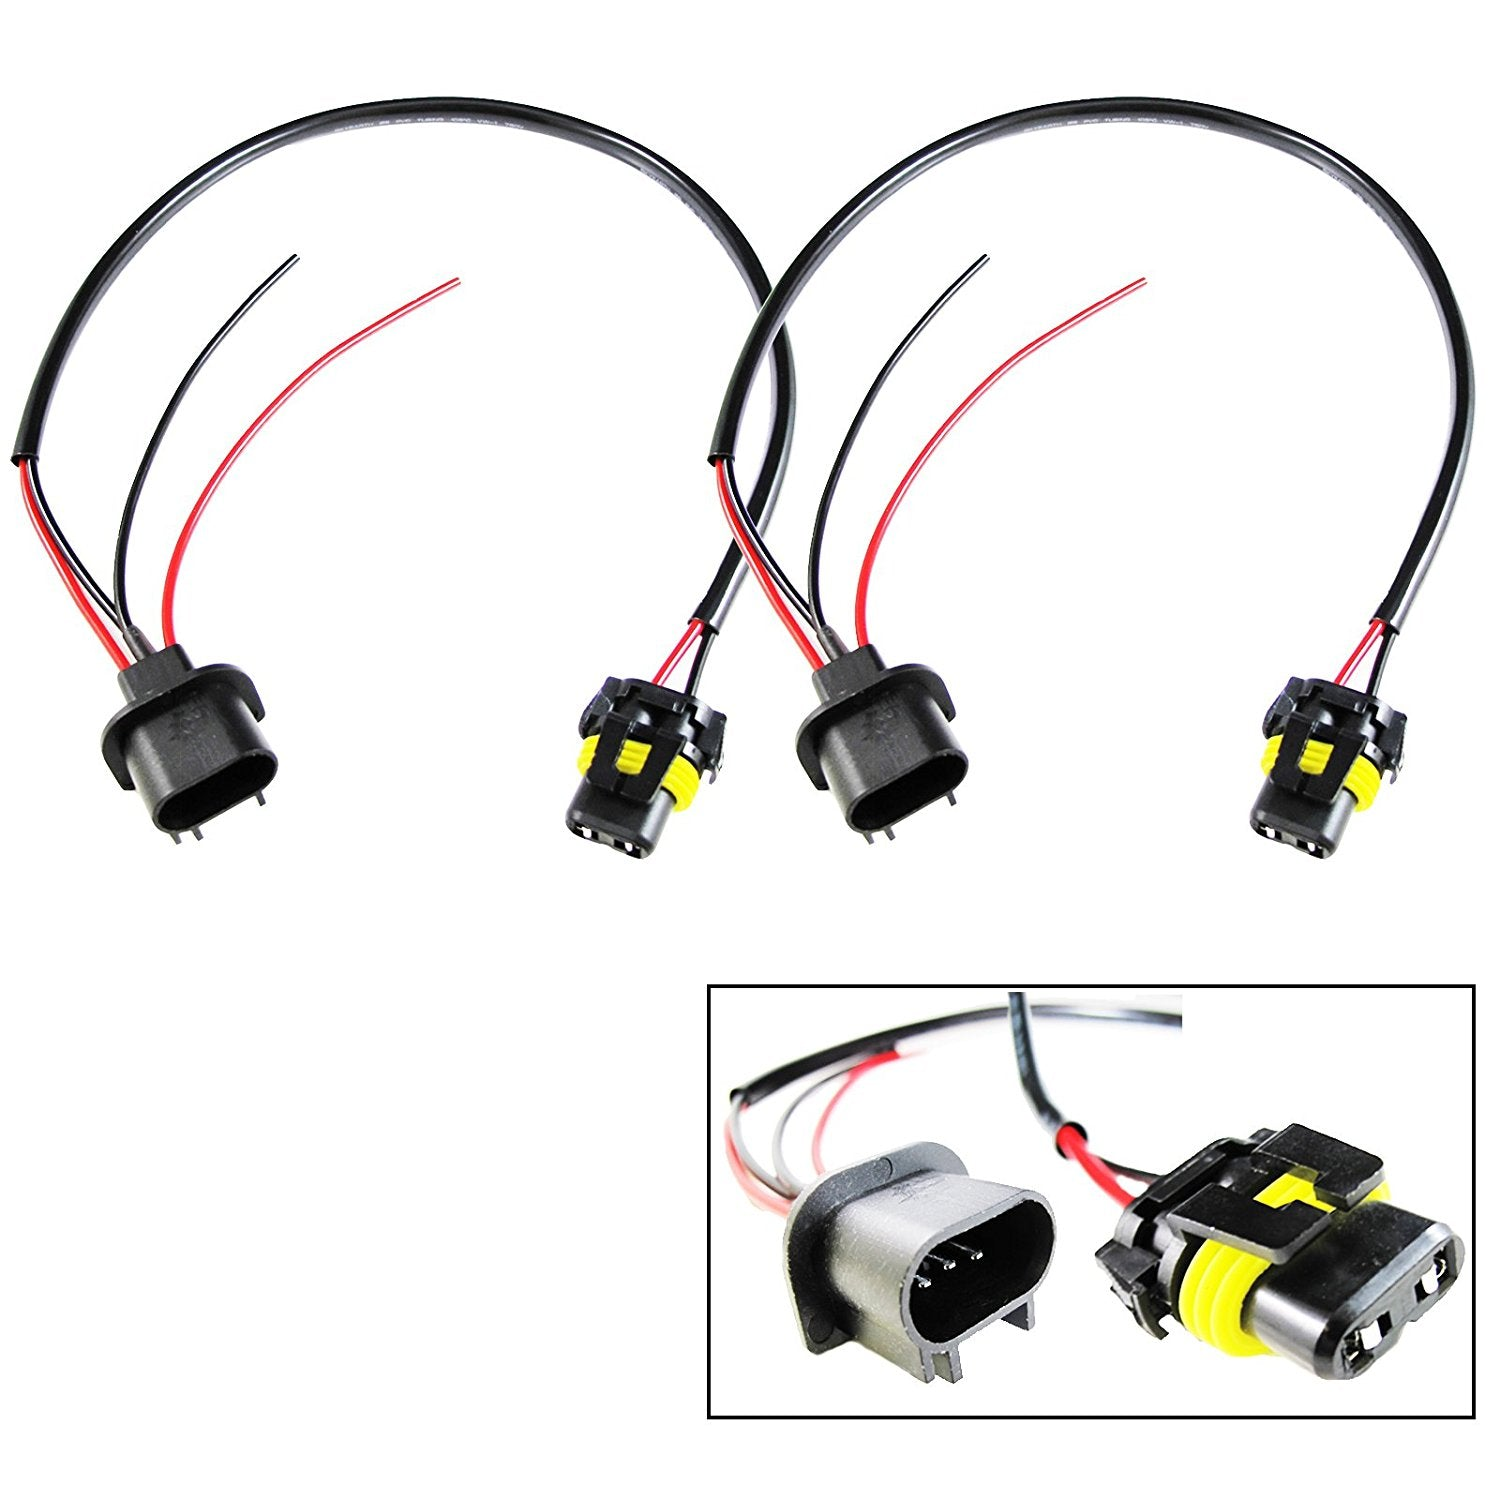 1 Pair 9006 To H13 Conversion Wires Adapters For Headlight Retrofit H Headlight Wire Harness on headlight lamp, headlight washer, headlight motor, headlight wire cap, heavy duty wiring harness, 99 volvo semi truck wiring harness, vw mk4 headlight harness, headlight fuse, headlight wiring, 2003 gsxr 600 wiring harness, vw new beetle wiring harness, heavy duty headlight harness, mercedes e320 headlight harness, volvo v70 fog light wiring harness, headlight wire housing,